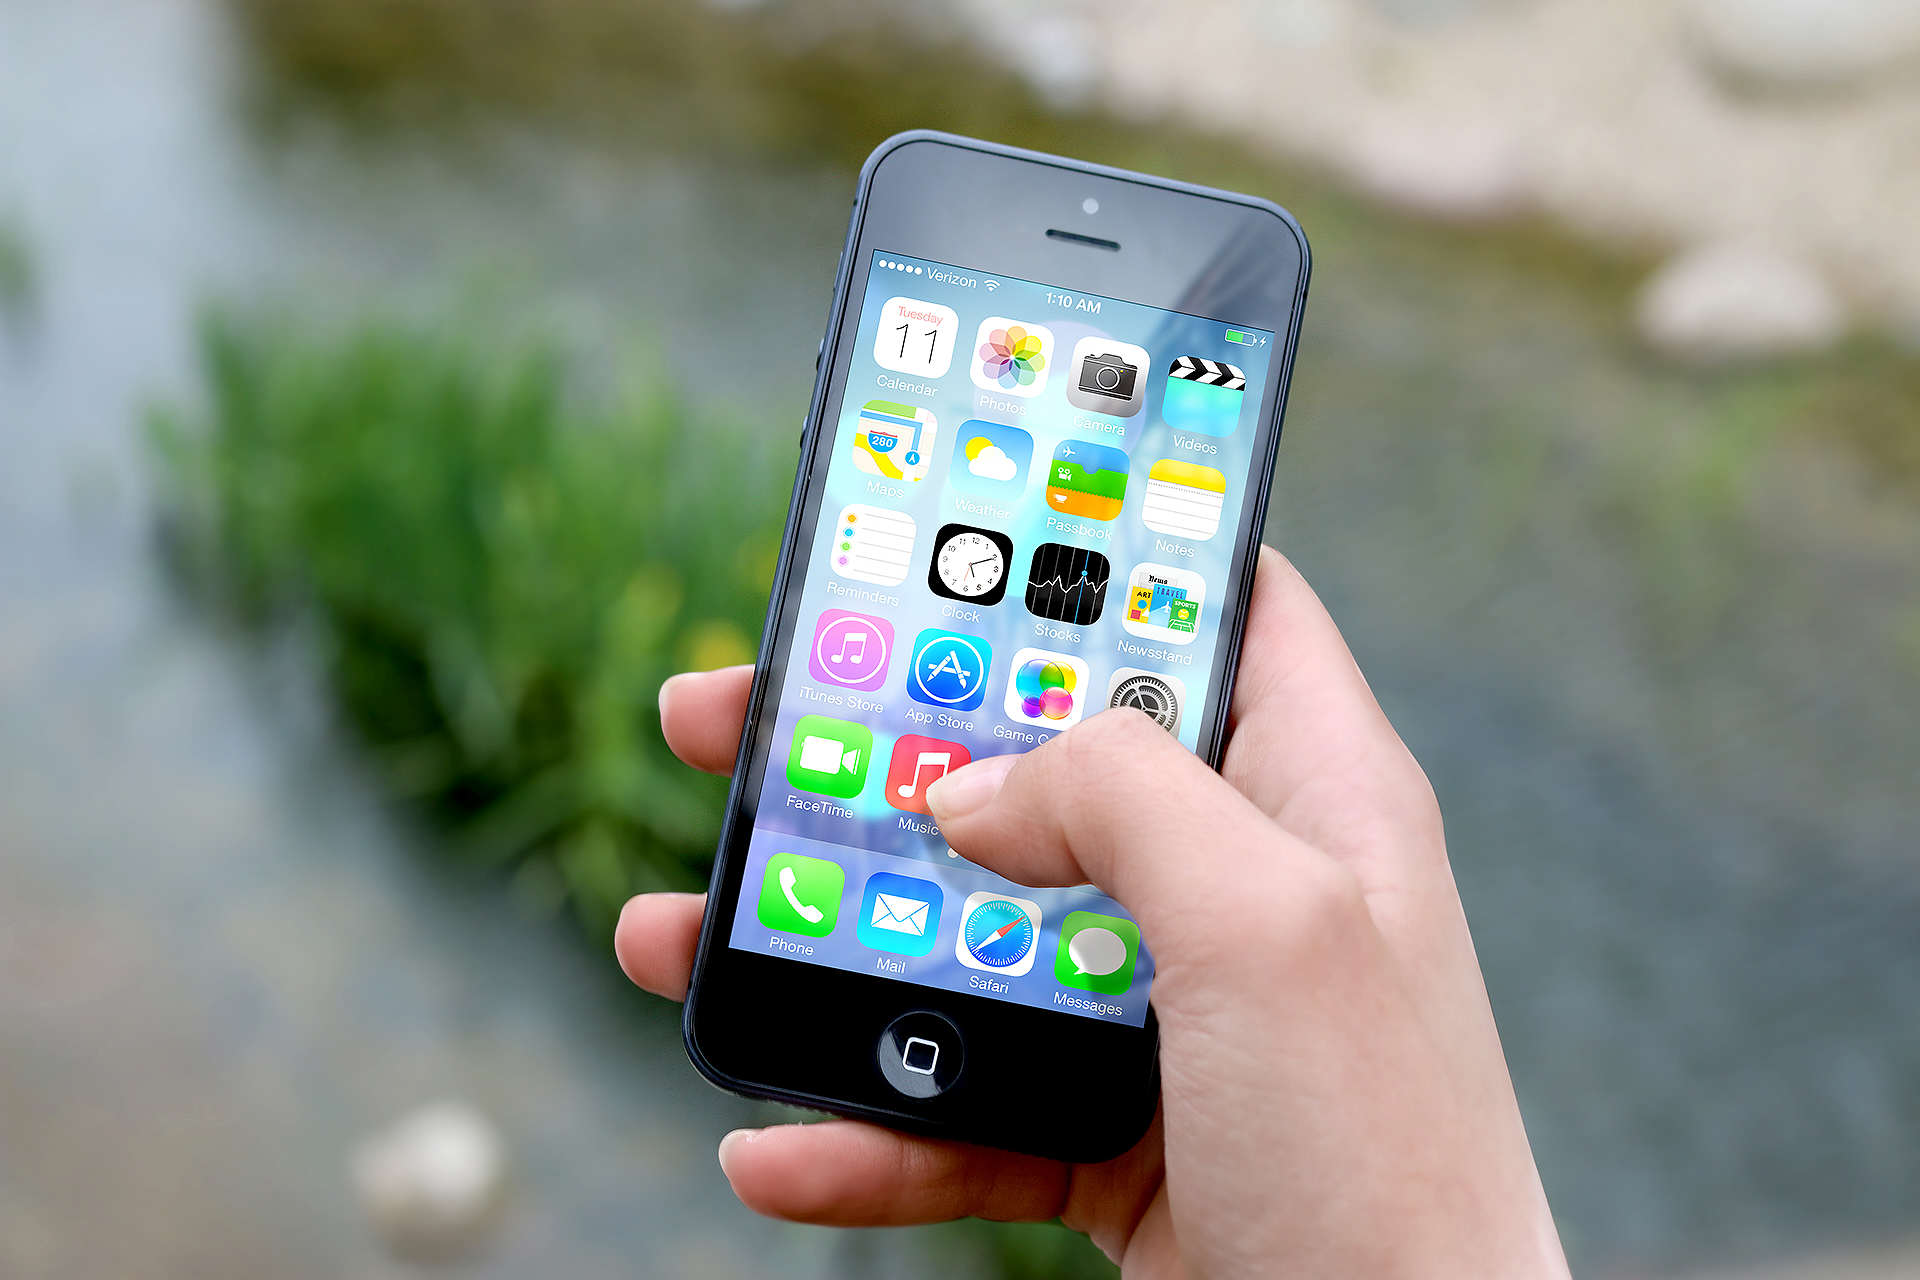 Video Shows How Easily Your iPhone Can Be Opened Without Passcode hack